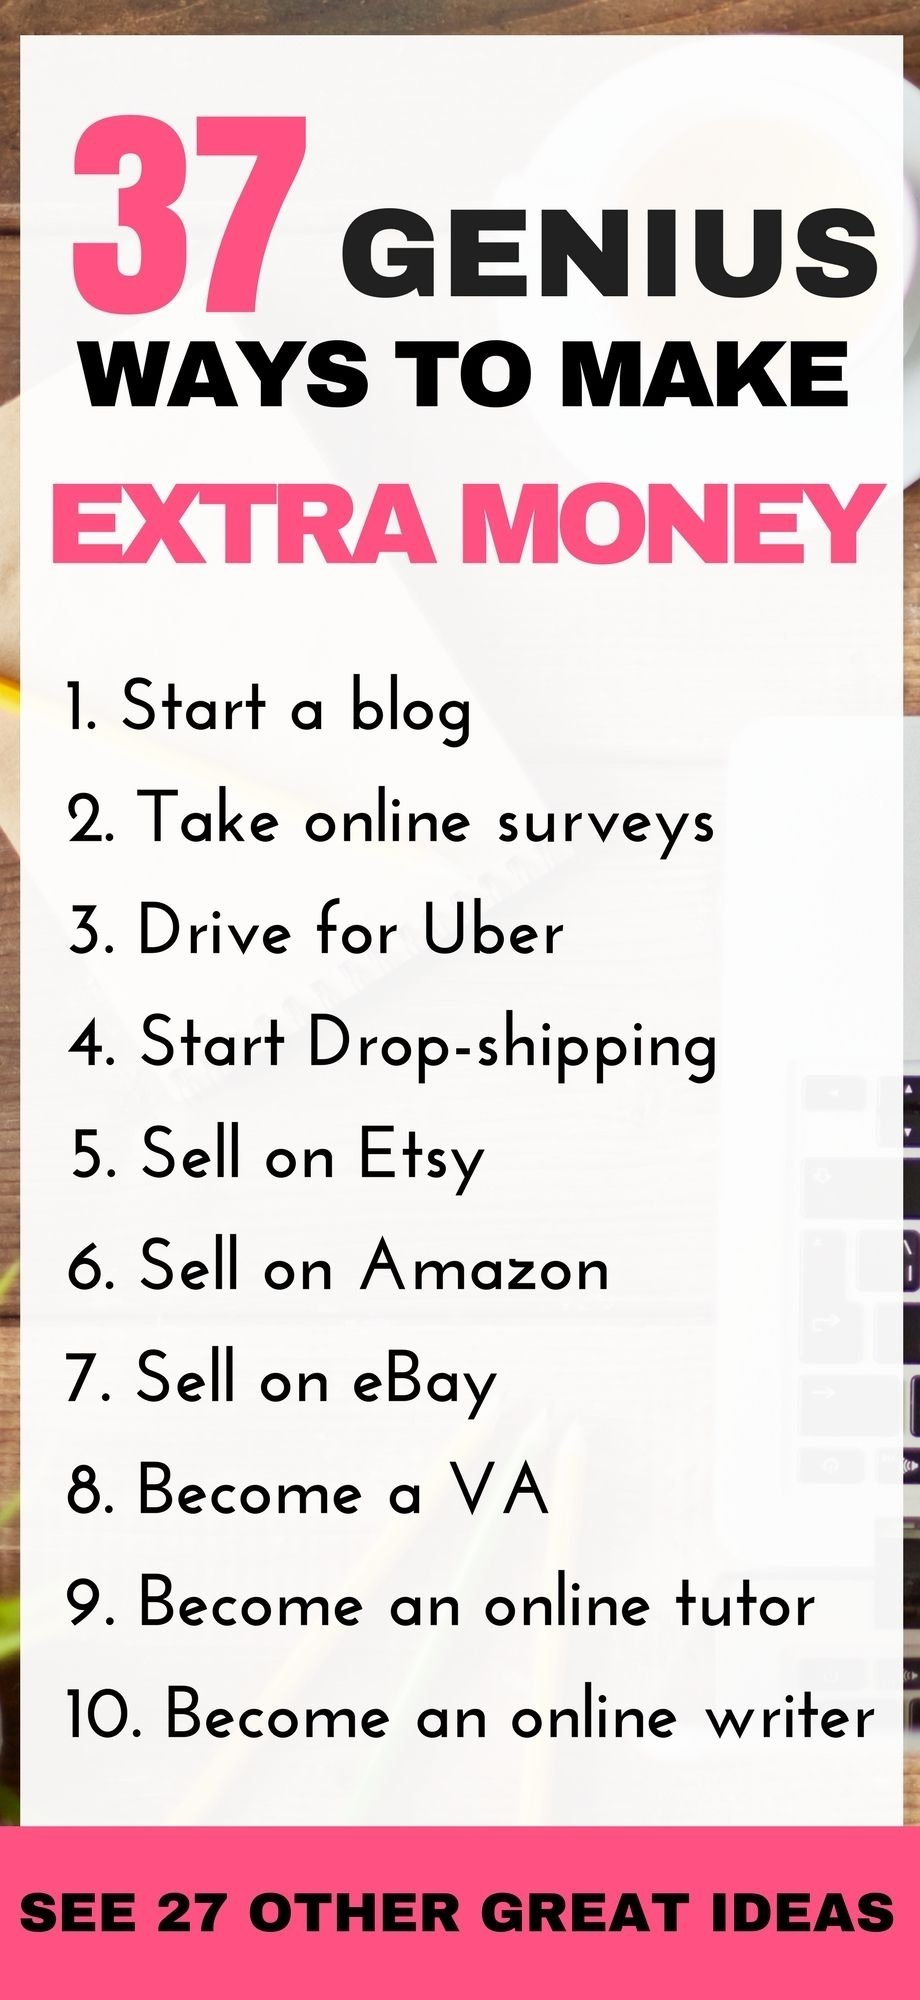 10 Attractive Ideas To Make Money From Home 30 genius ways to make extra money 1000 working from home 9